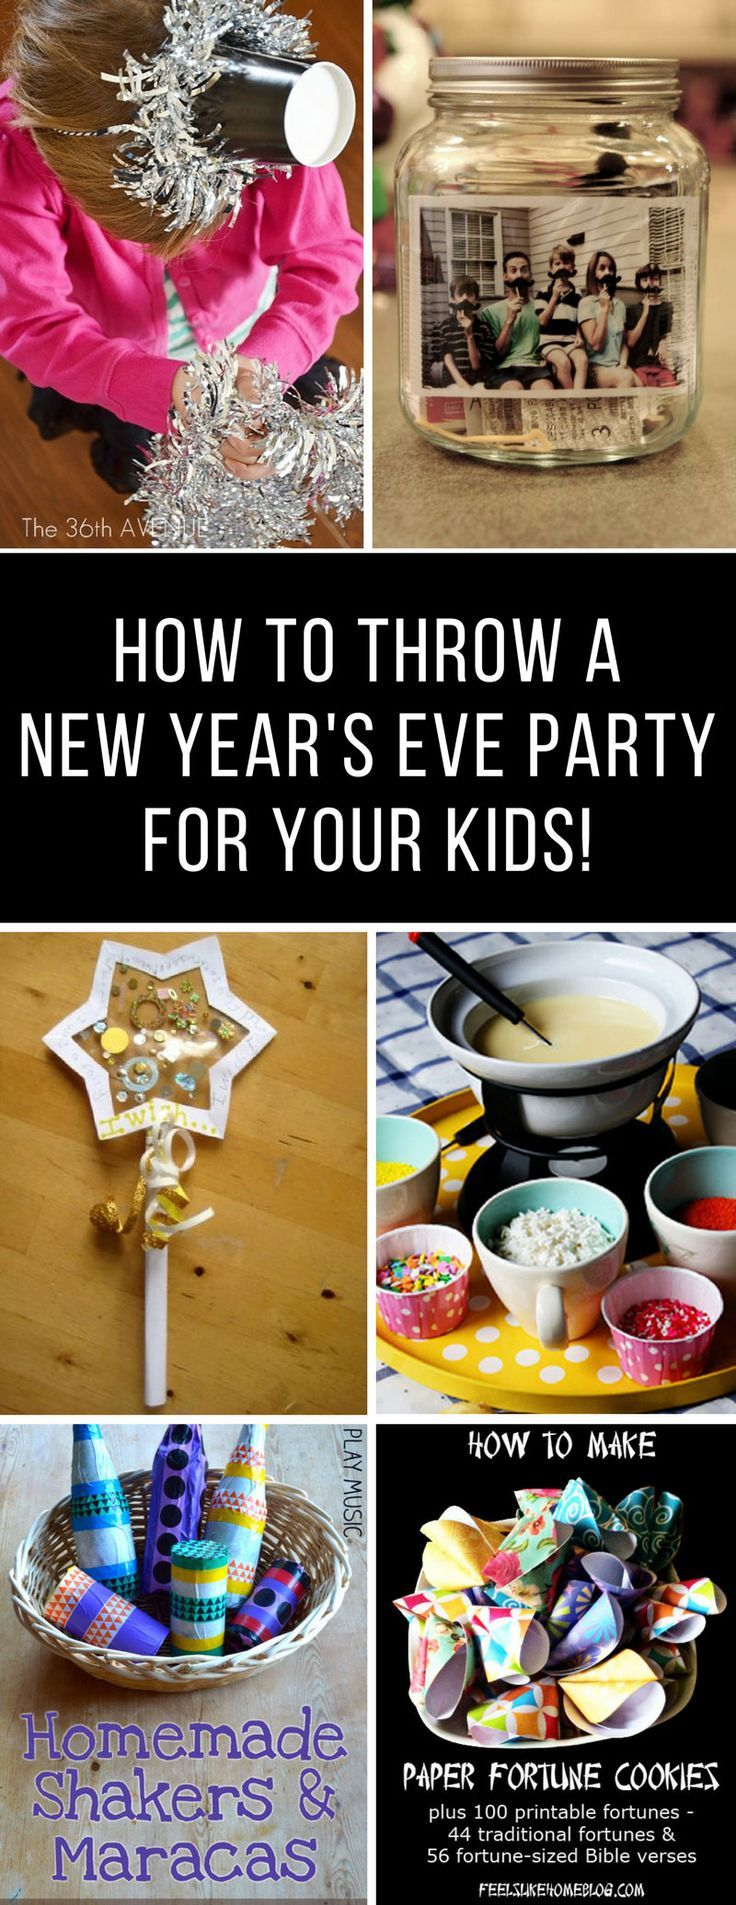 1707 best Fun Stuff for Kids images on Pinterest ...